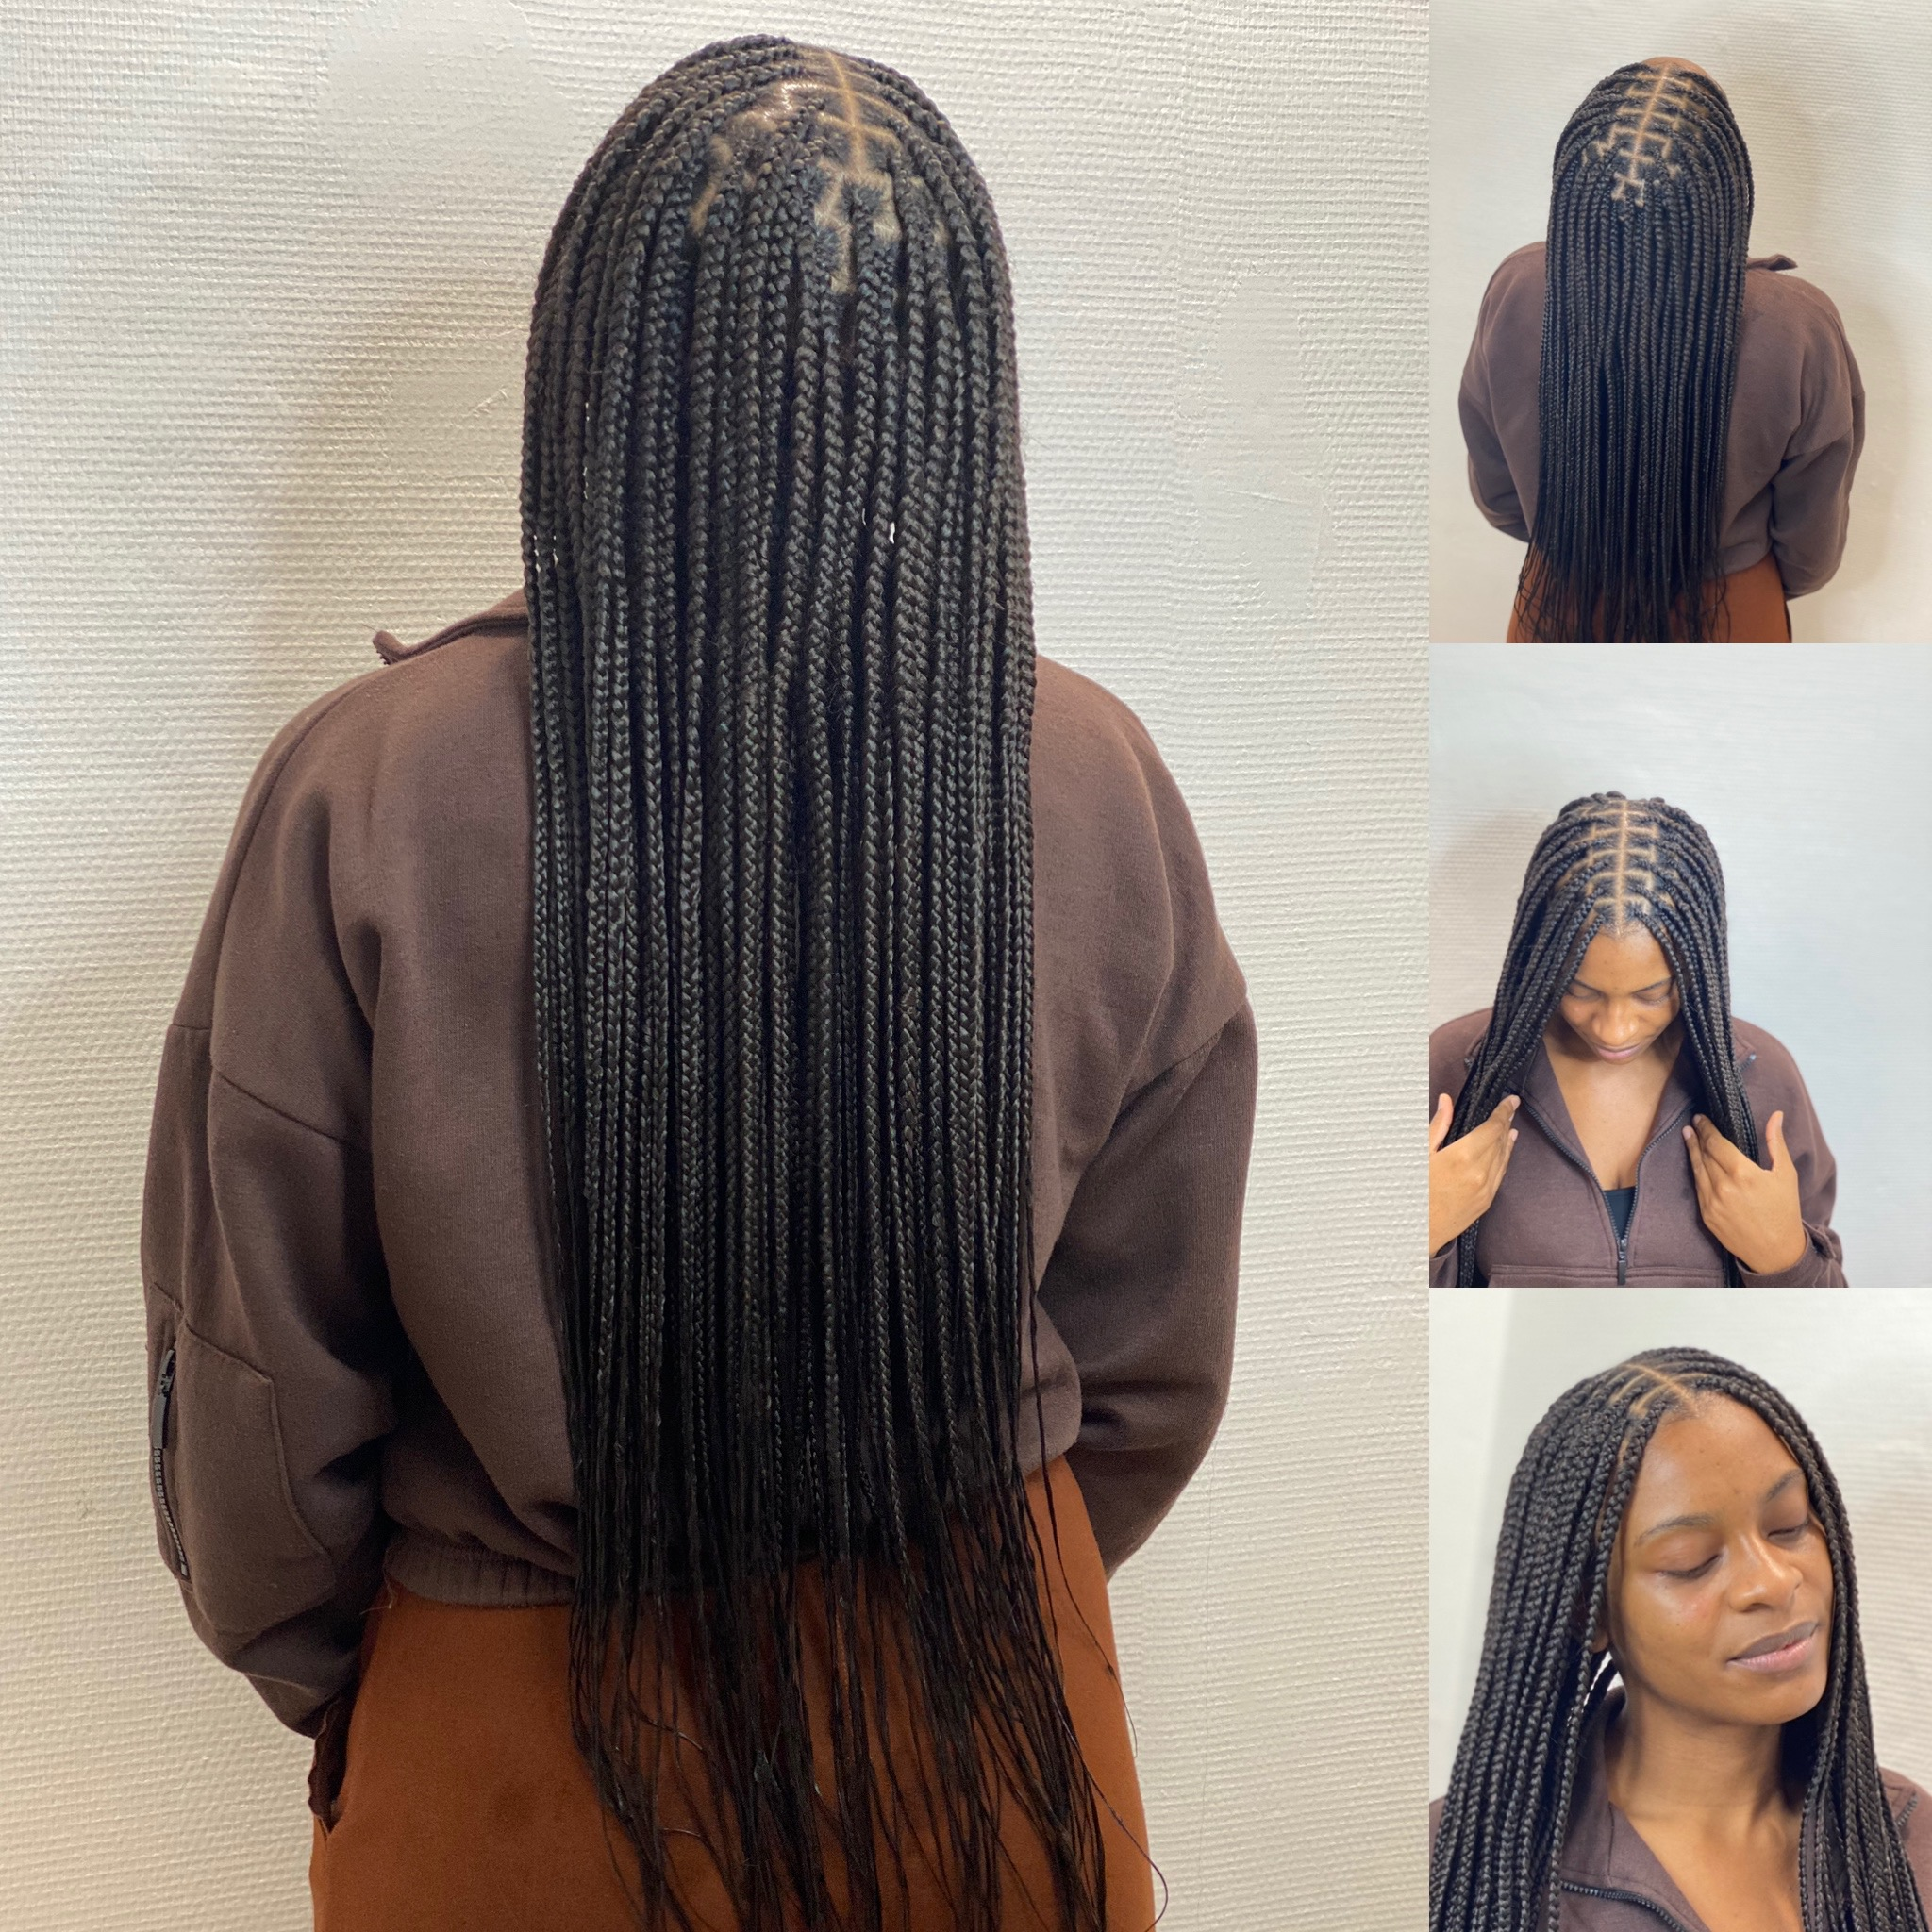 salon de coiffure afro tresse tresses box braids crochet braids vanilles tissages paris 75 77 78 91 92 93 94 95 ZEROBFFT